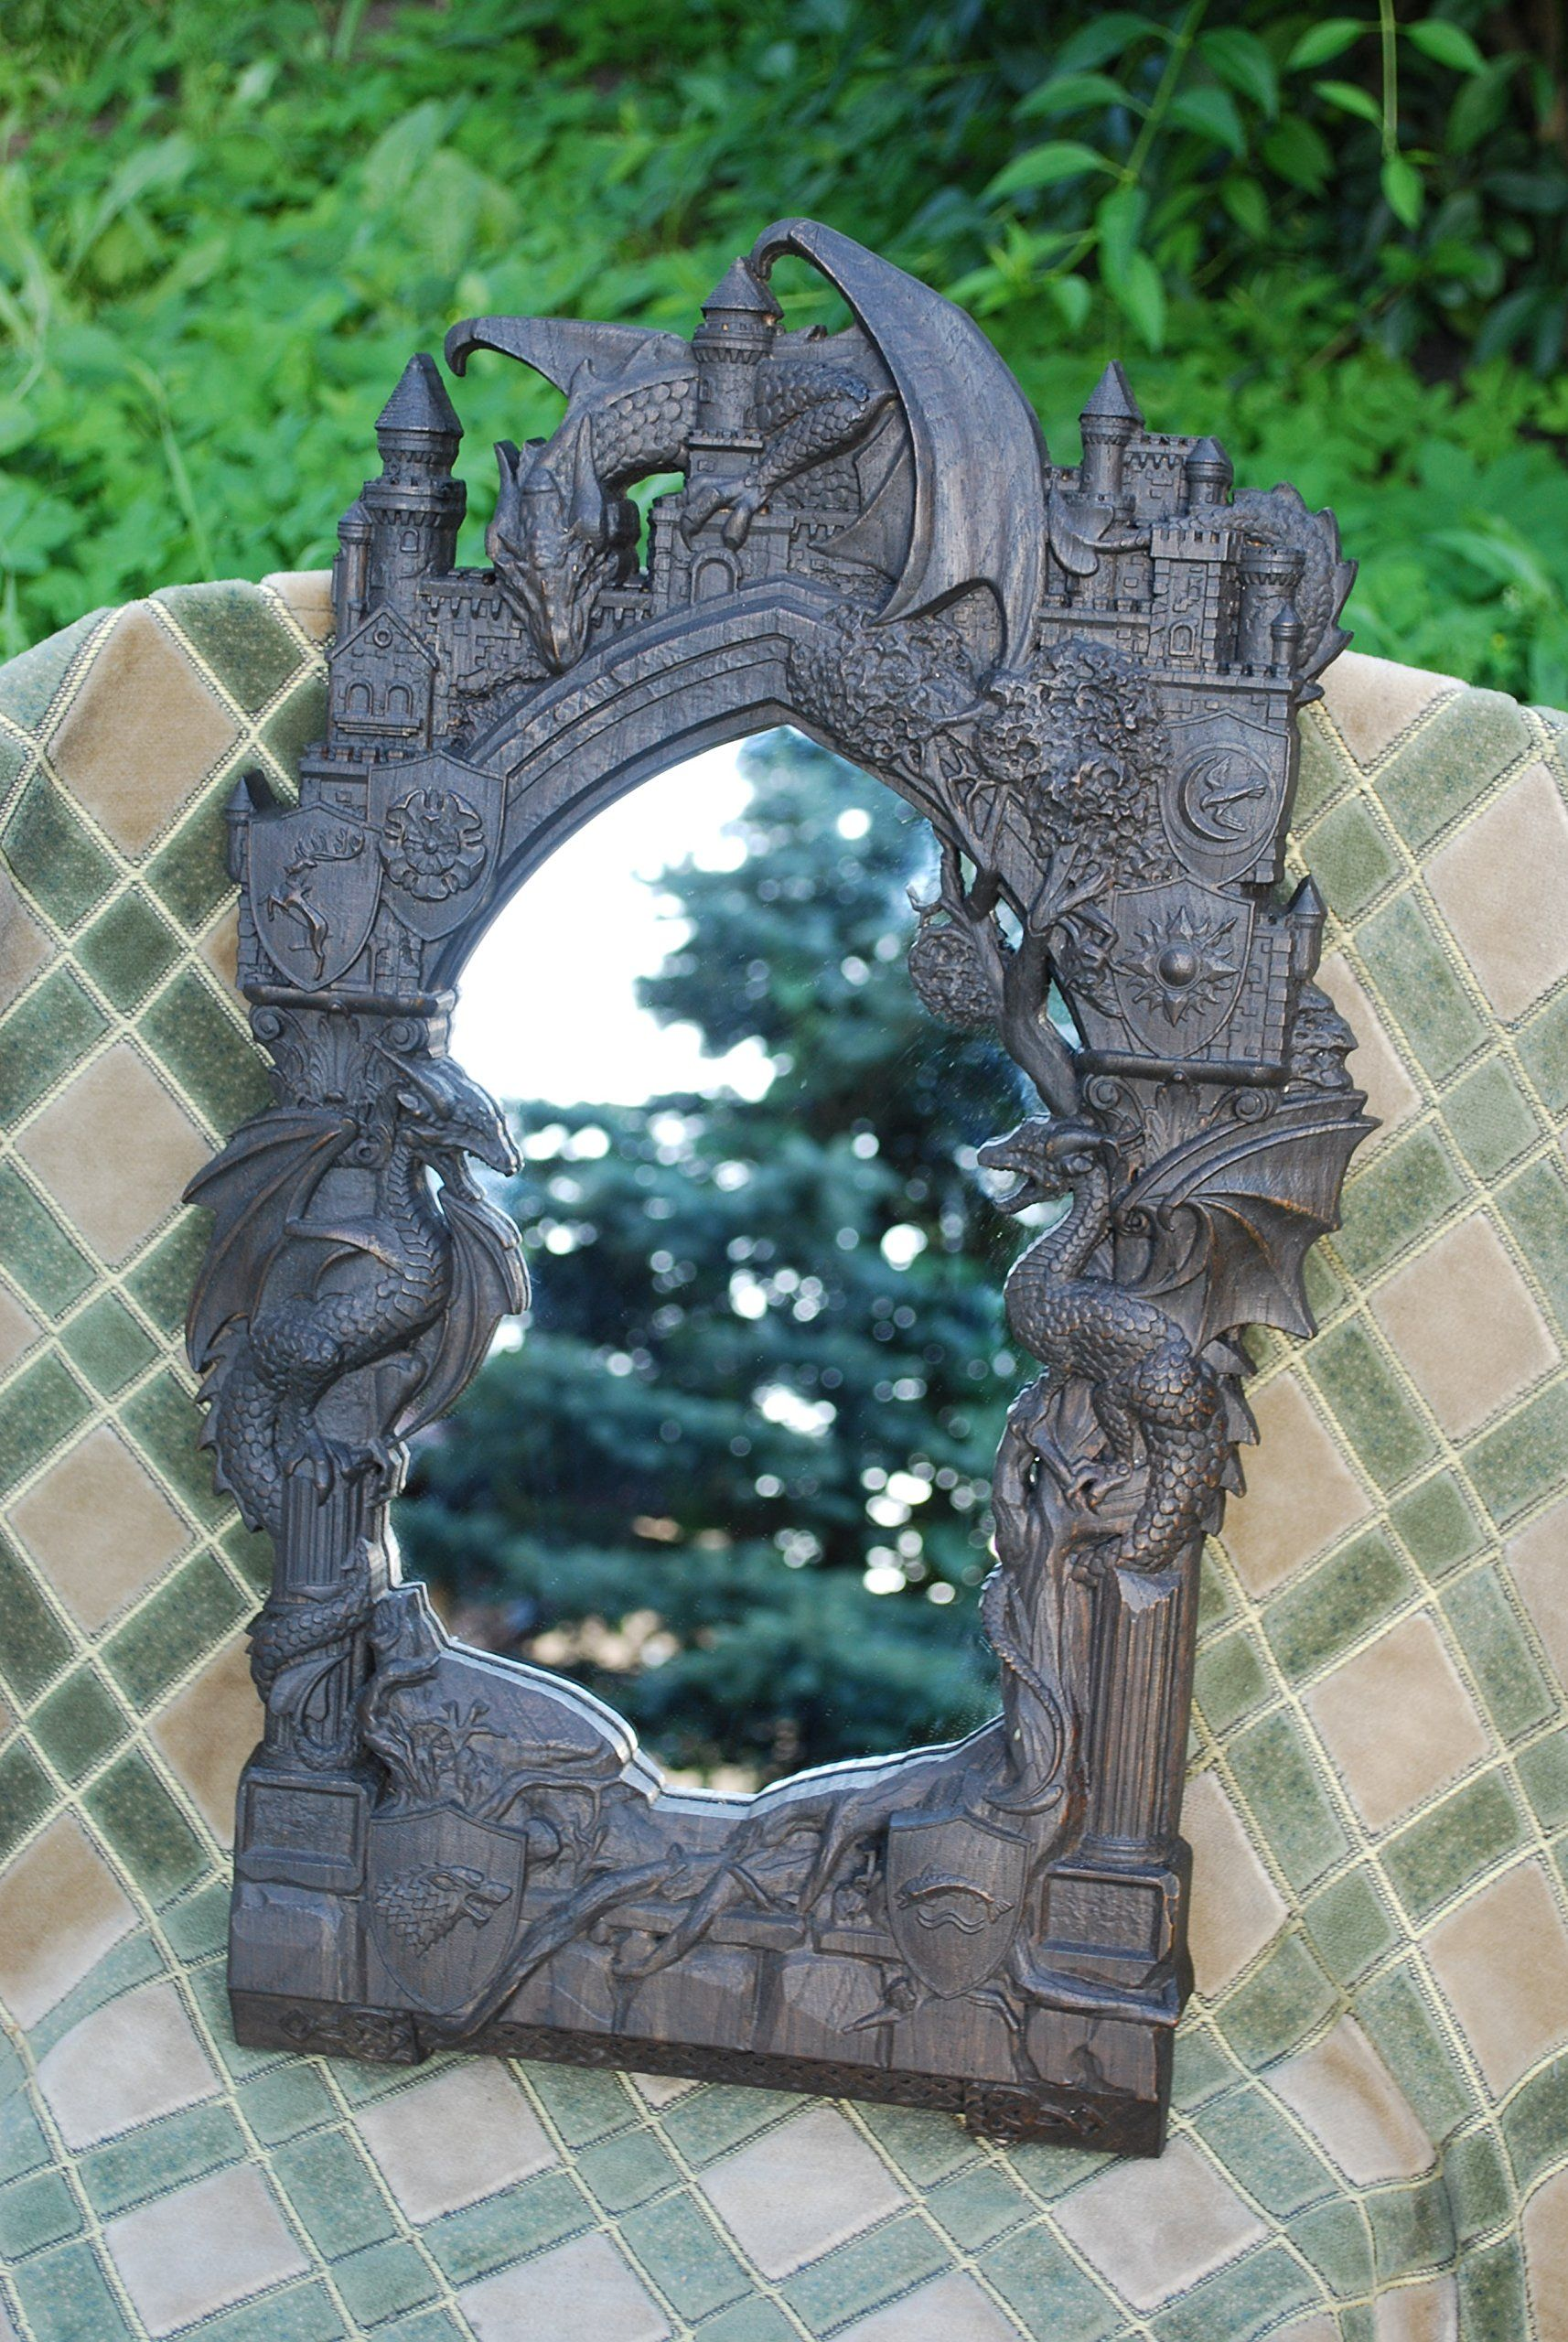 Game of thrones mirror wood carving wall art cosplay mirror free